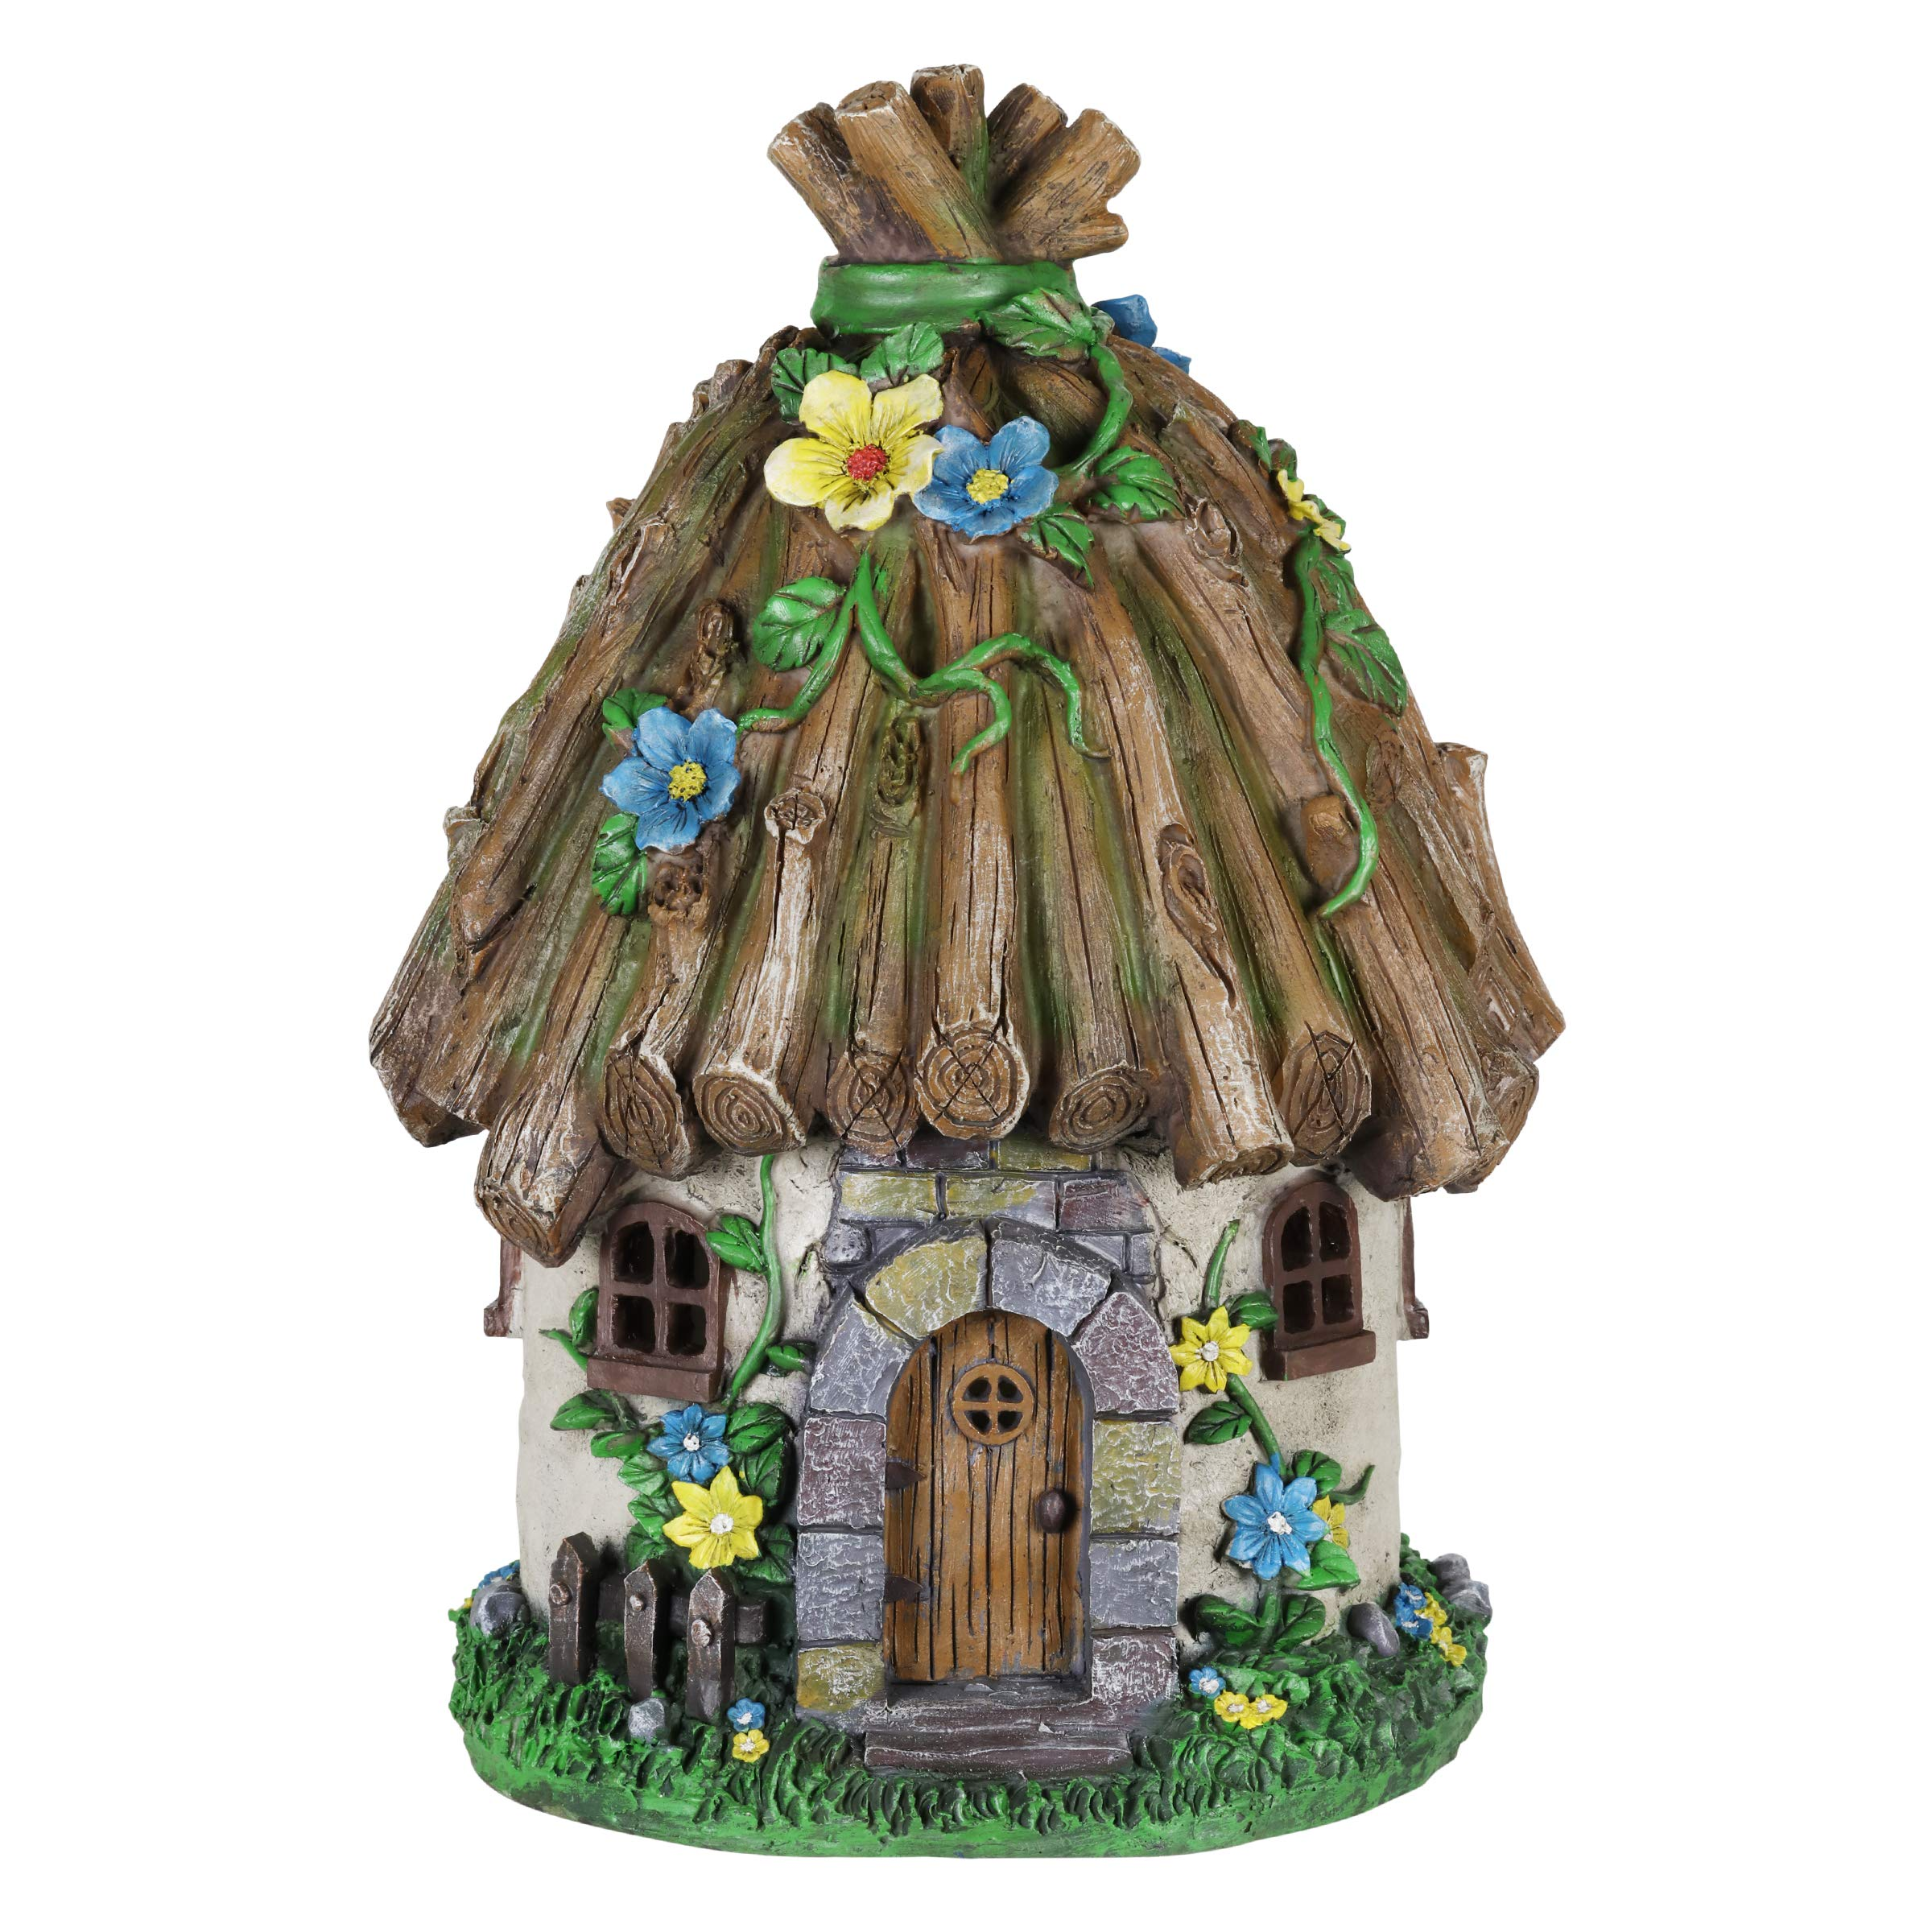 Exhart Twigs Roof Fairy House Outdoor Decor - Fairy Cottage Resin Statue with Solar Garden Lights, Miniature Fairy Hut Solar Home Decor for a Magical Fairy Garden, 9'' L x 9'' W x 15'' H by Exhart (Image #1)